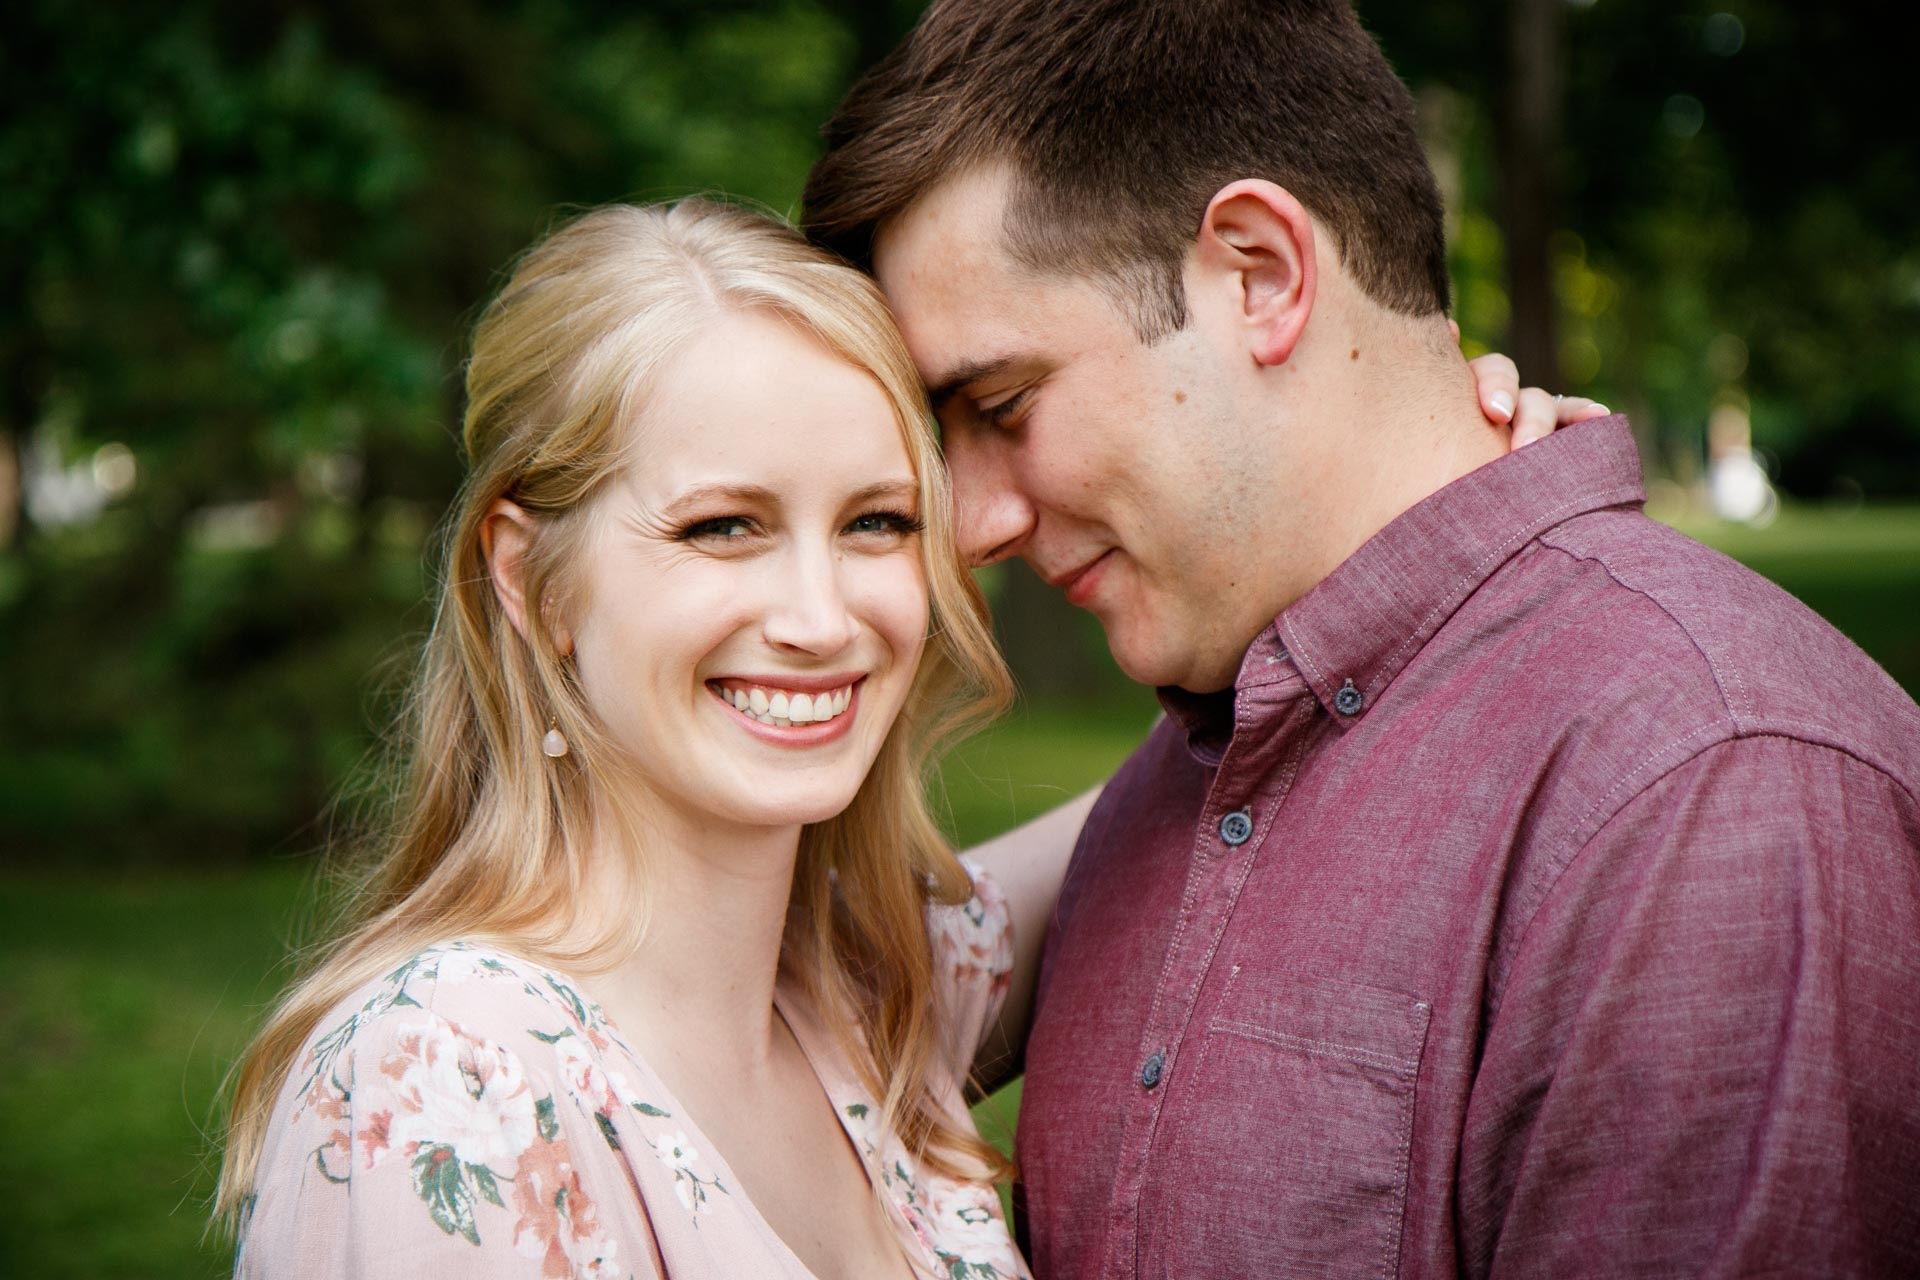 lauren-william-engagement-riverside-park-neenah-adam-shea-photography-green-bay-appleton-neenah-photographer-6.jpg